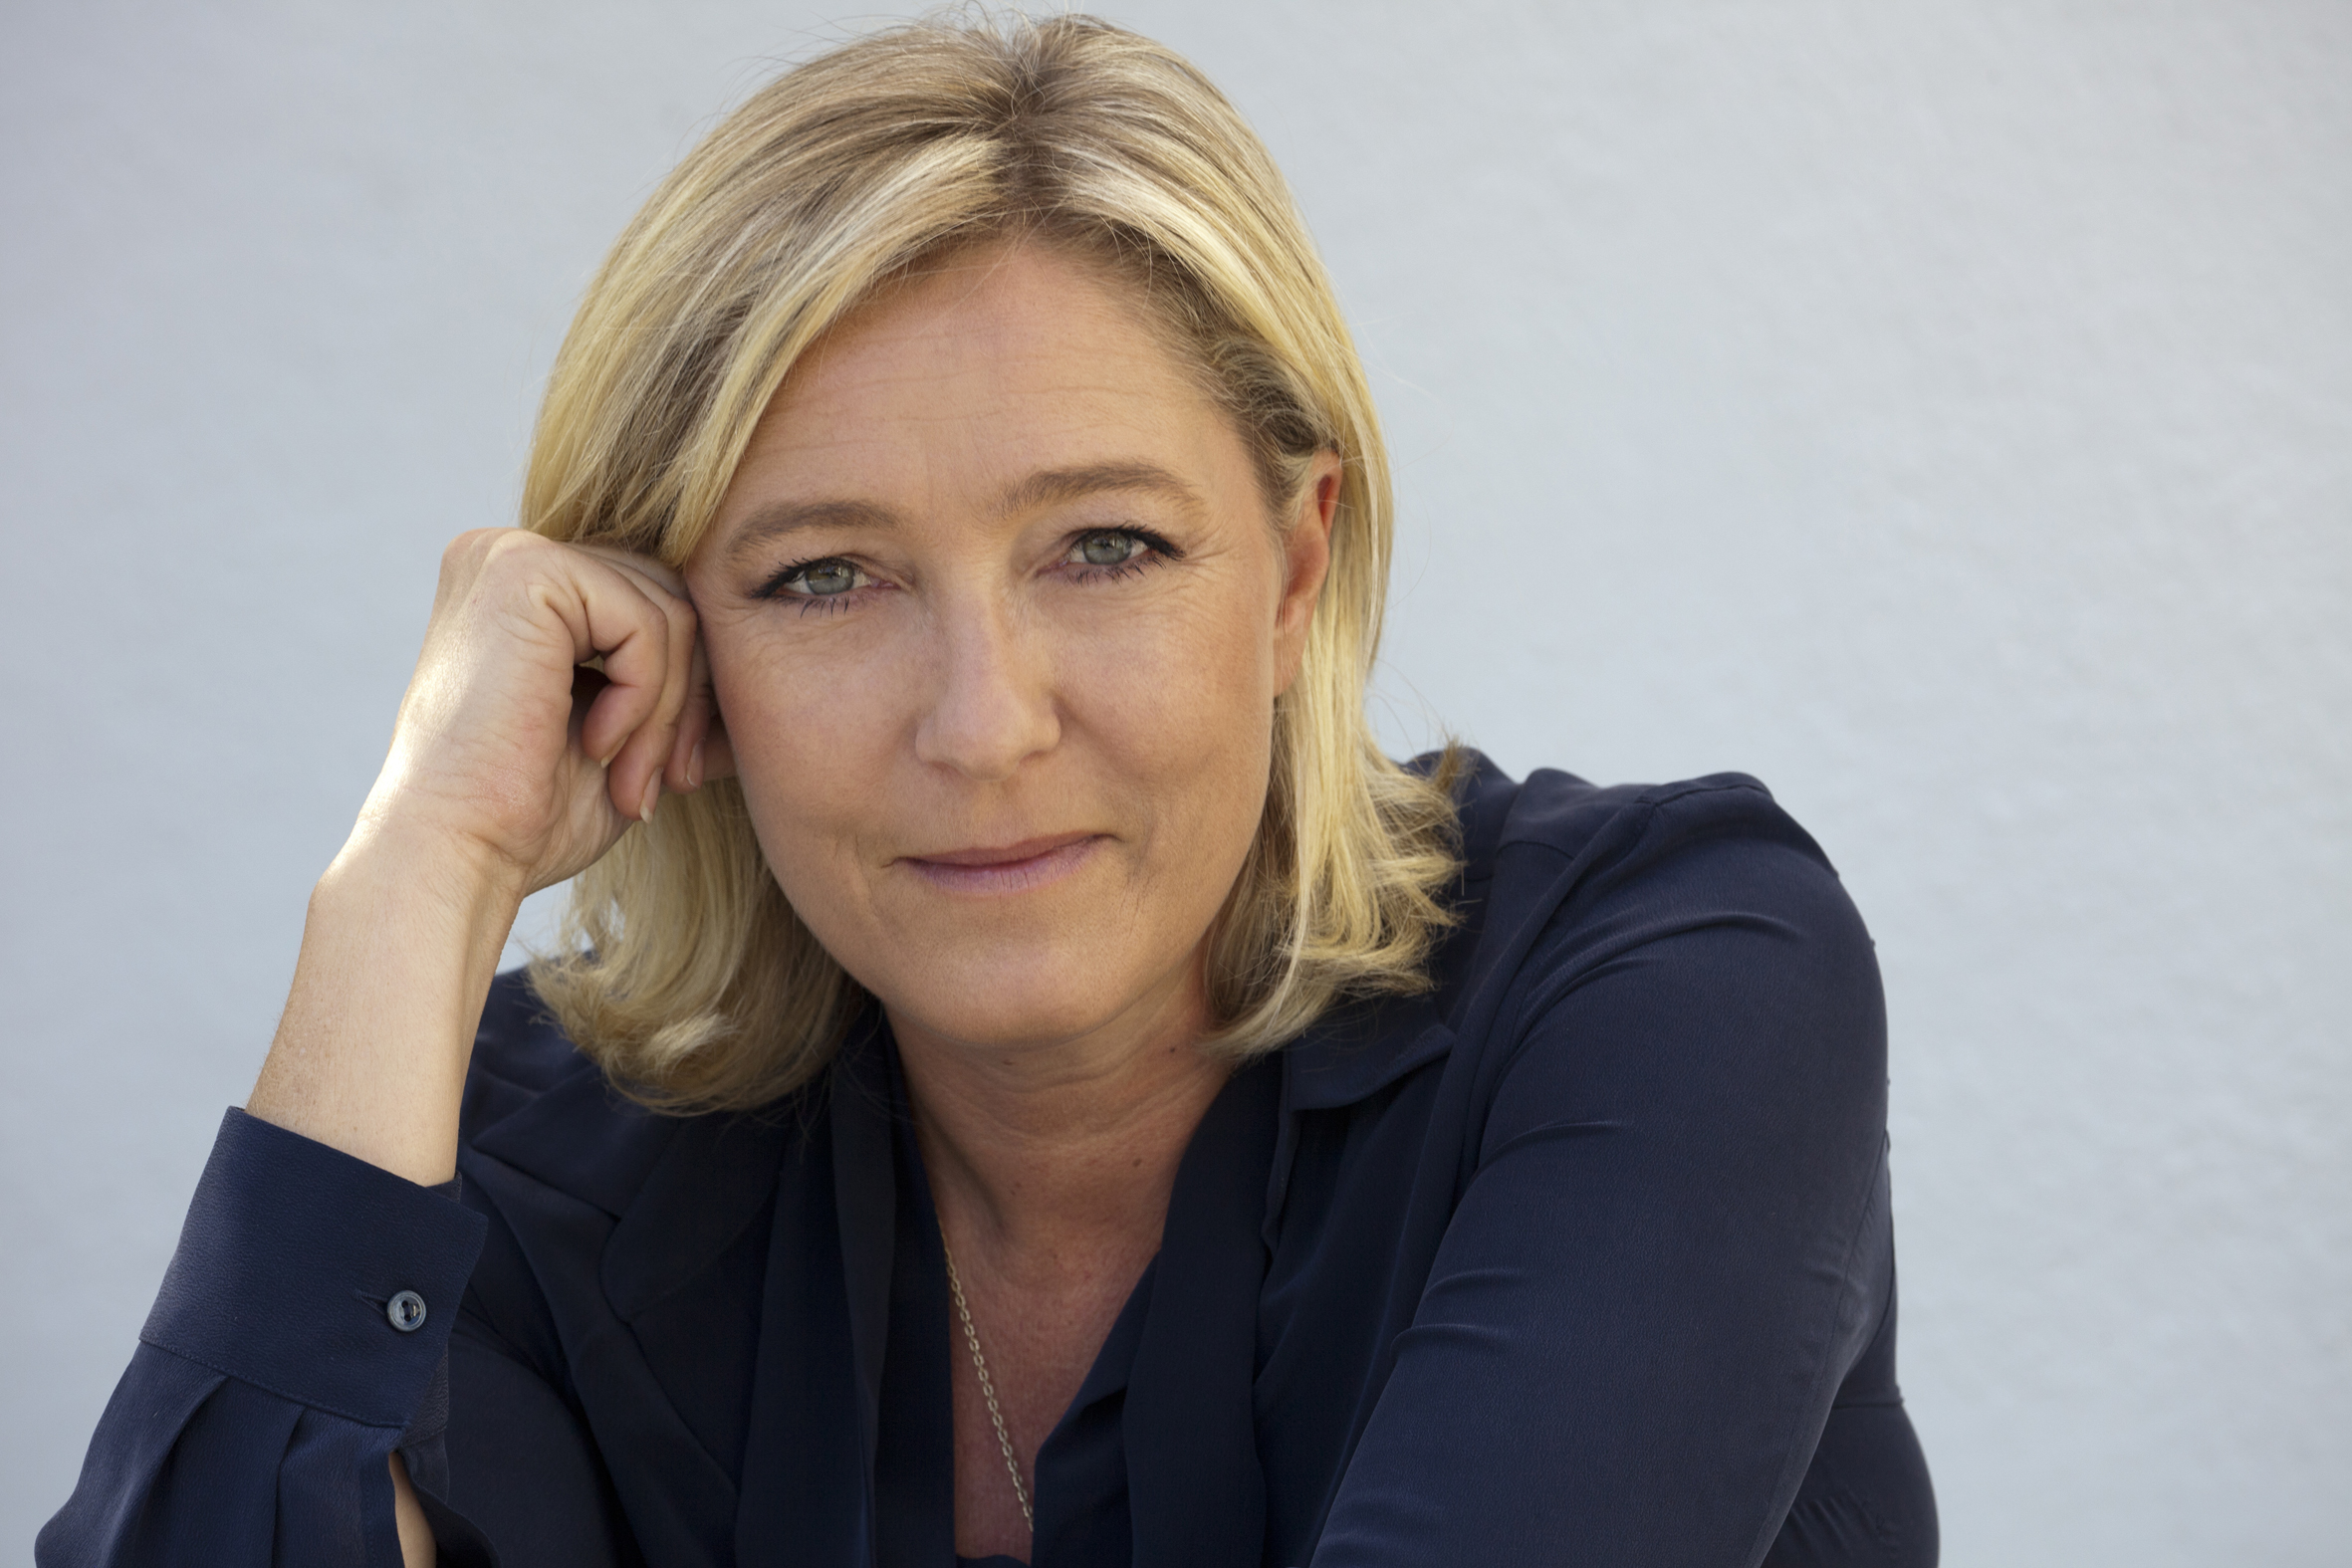 marine_le_pen_politician_france_ultra_right_national_front